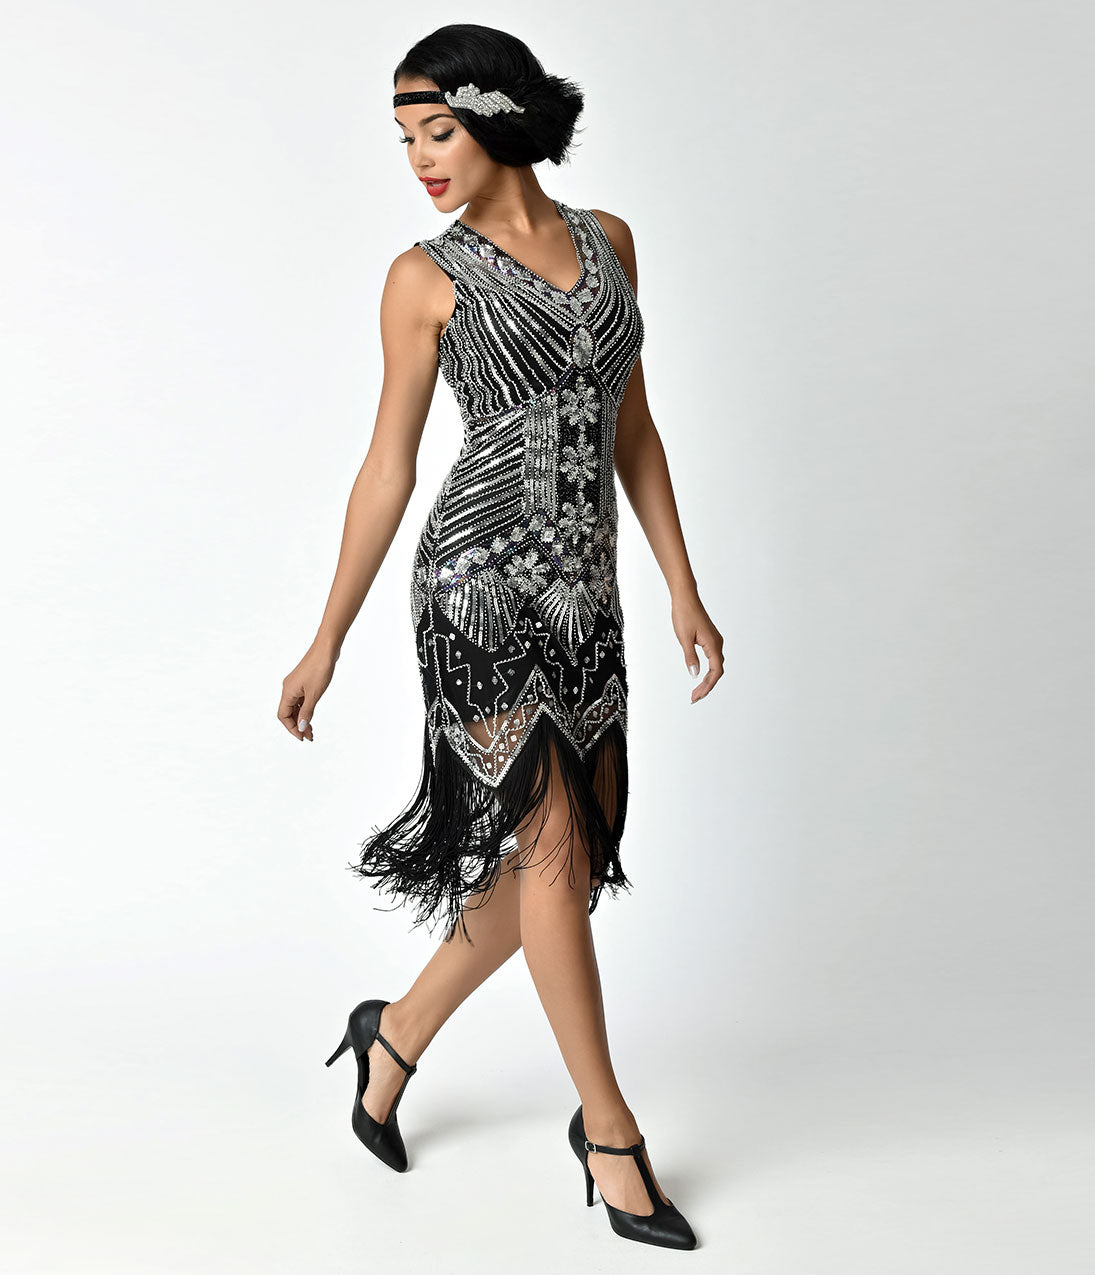 Roaring 20s Costumes- Flapper Costumes, Gangster Costumes Unique Vintage 1920S Deco Silver  Black Veronique Fringe Flapper Dress $98.00 AT vintagedancer.com